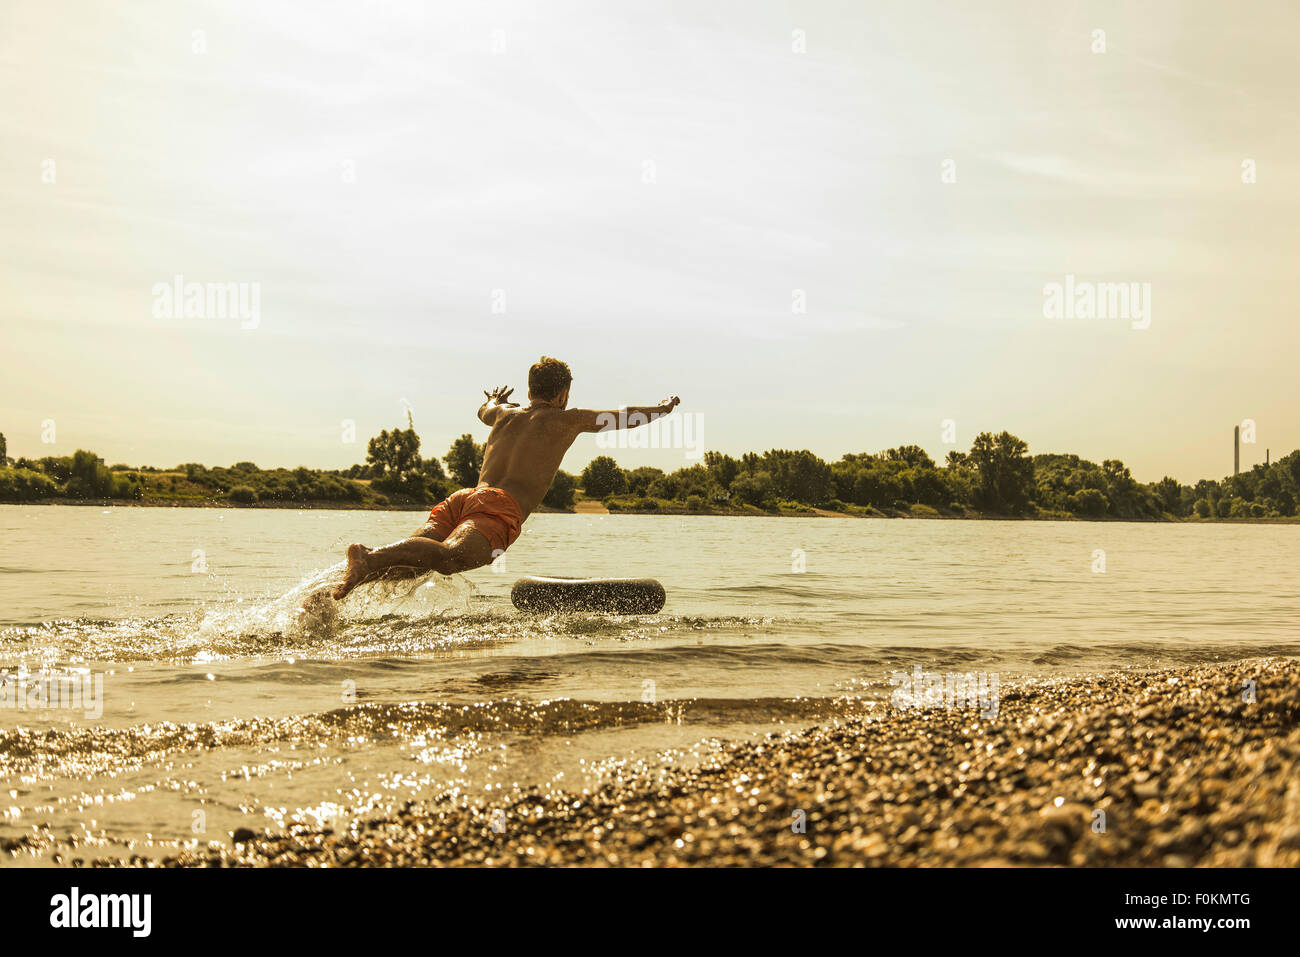 Young man jumping in river with inner tube - Stock Image